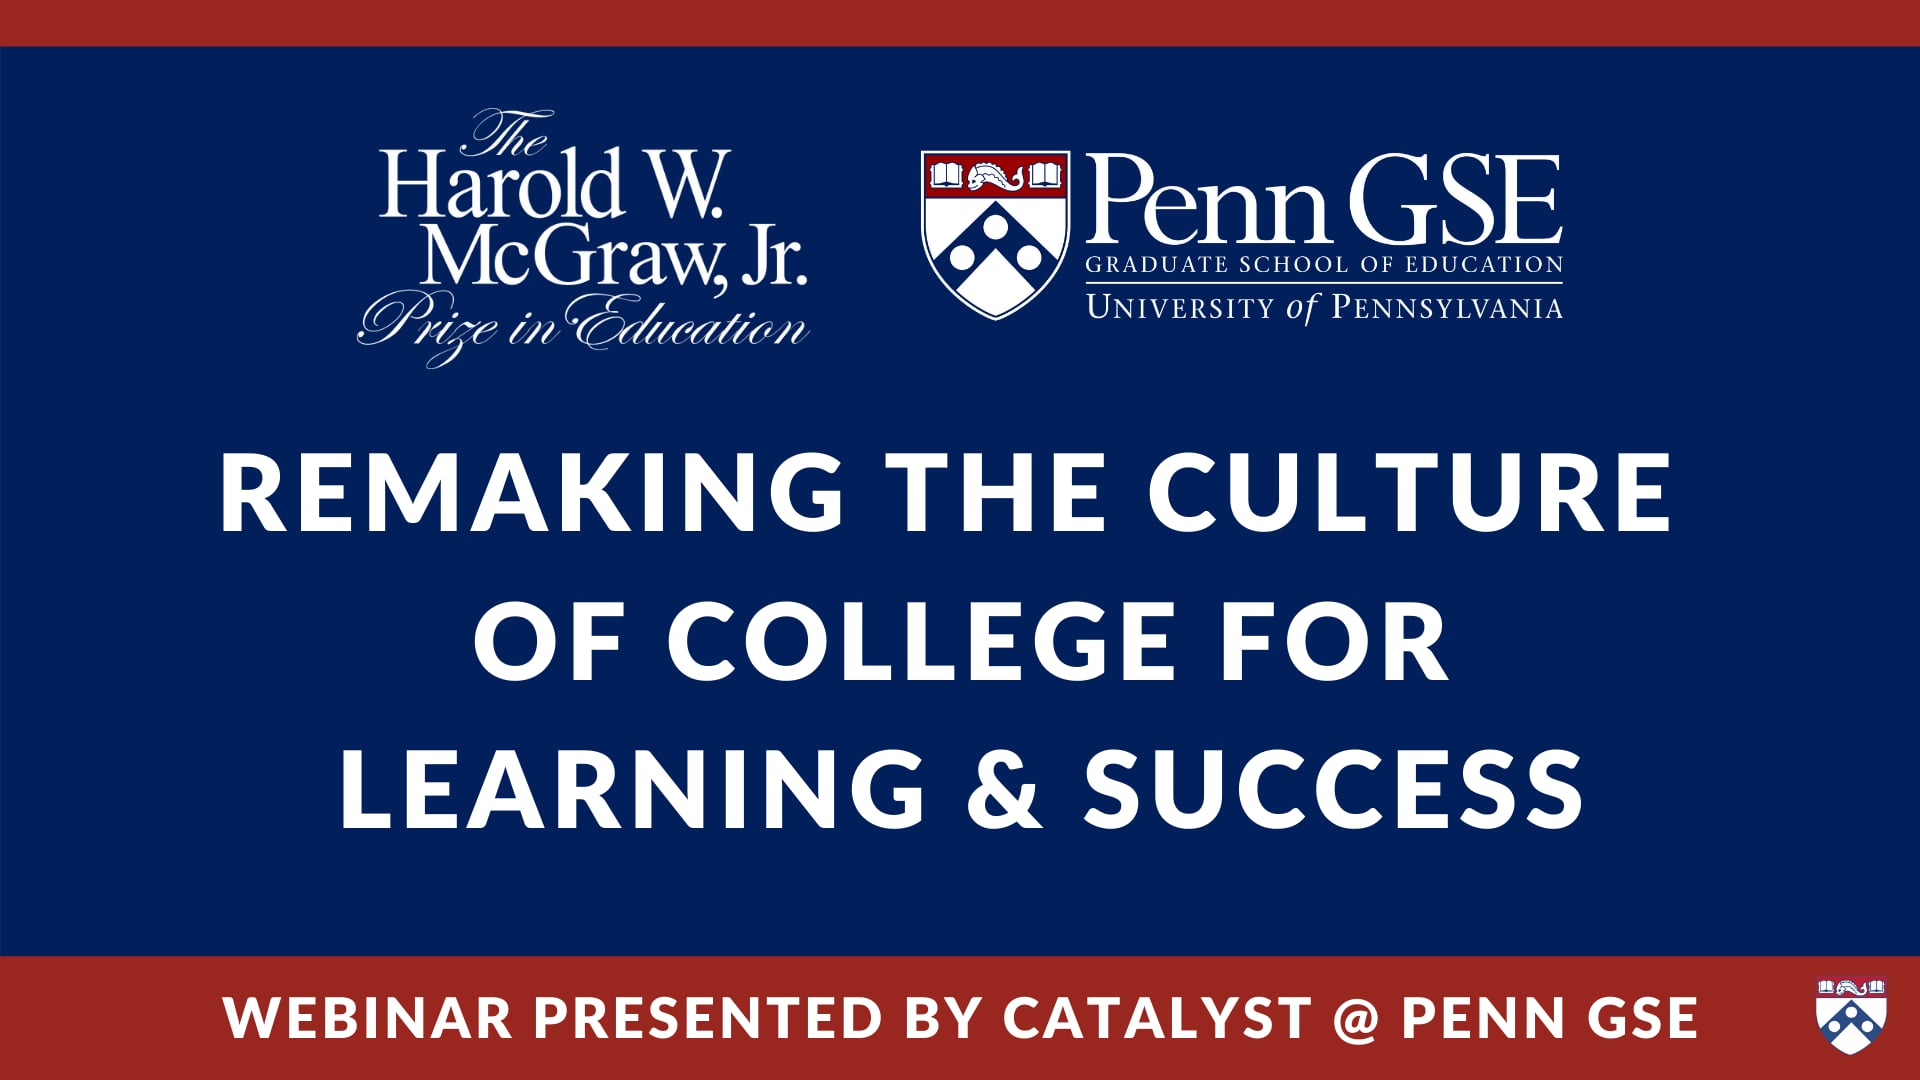 Play video: Remaking the Culture of College for Learning & Success